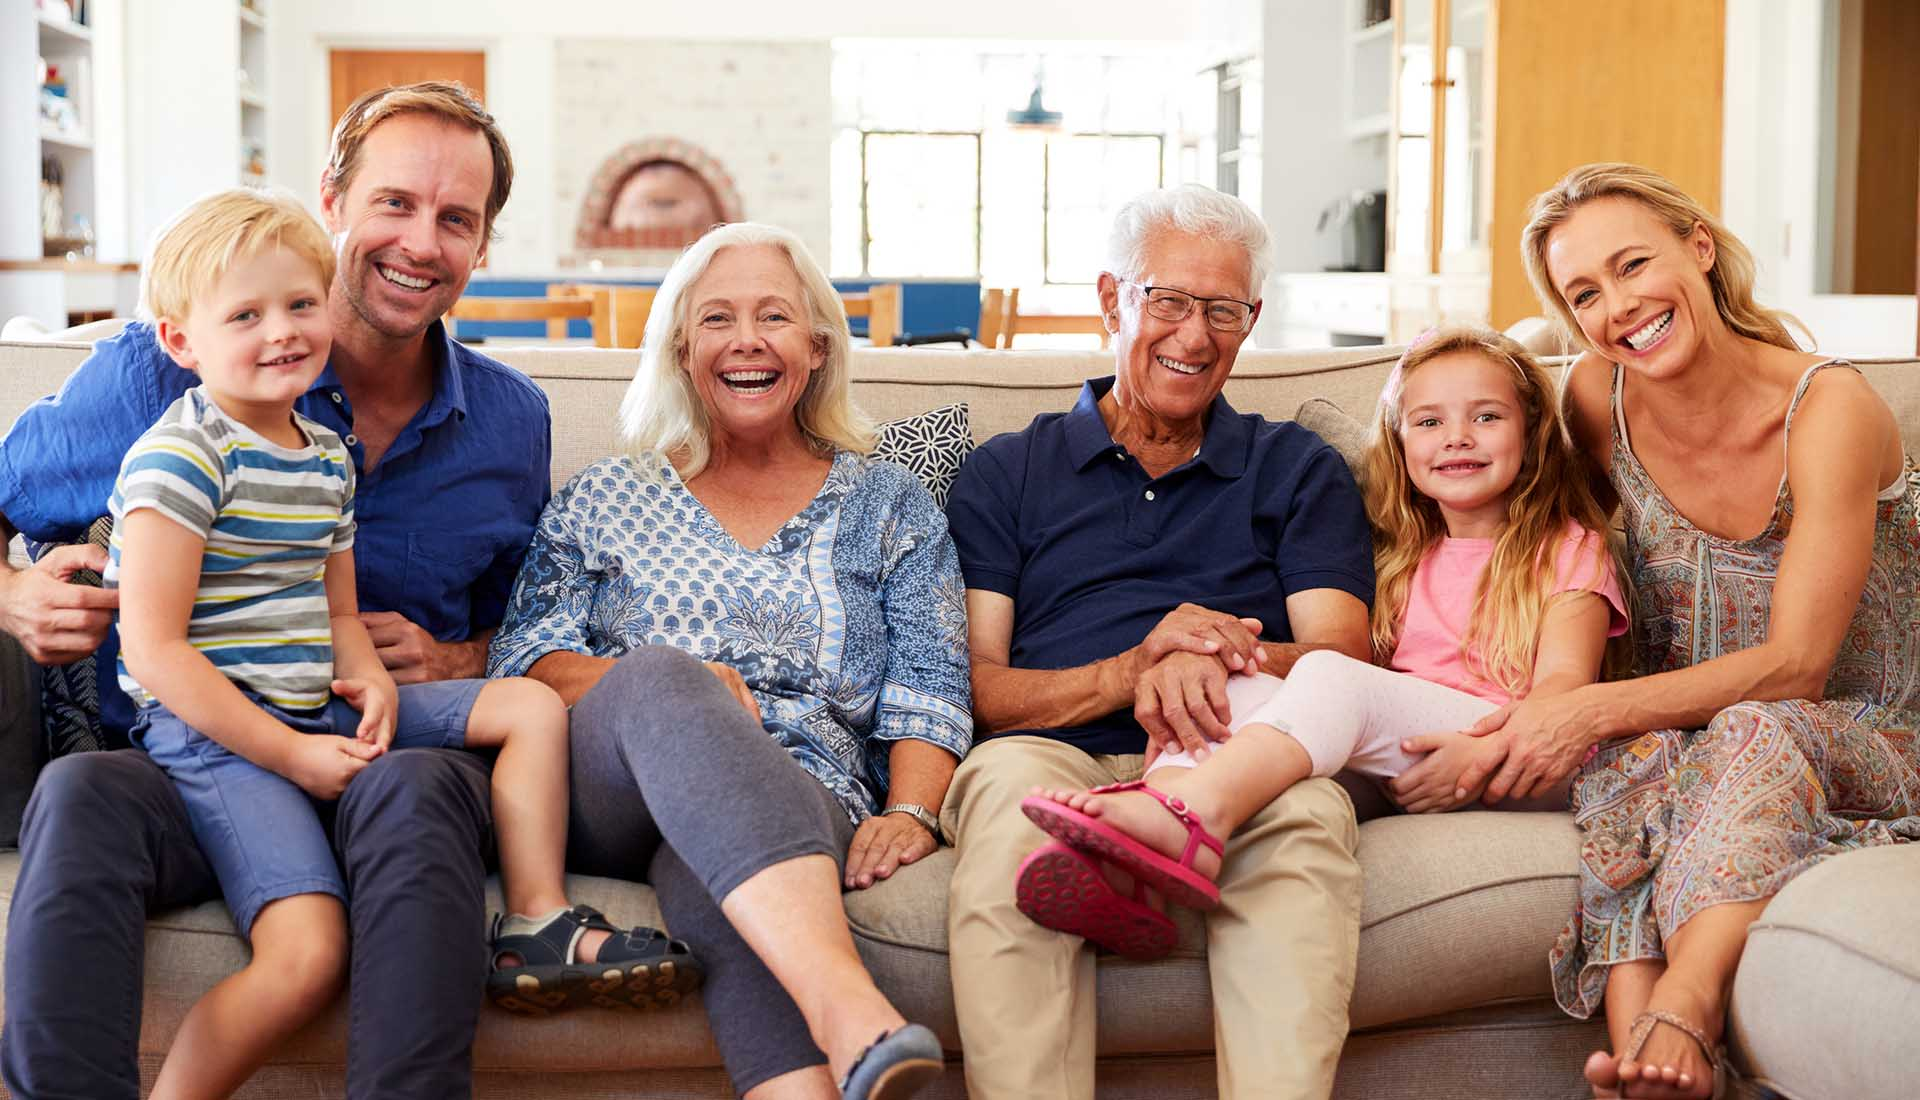 happy three-generation family enjoying time together at home